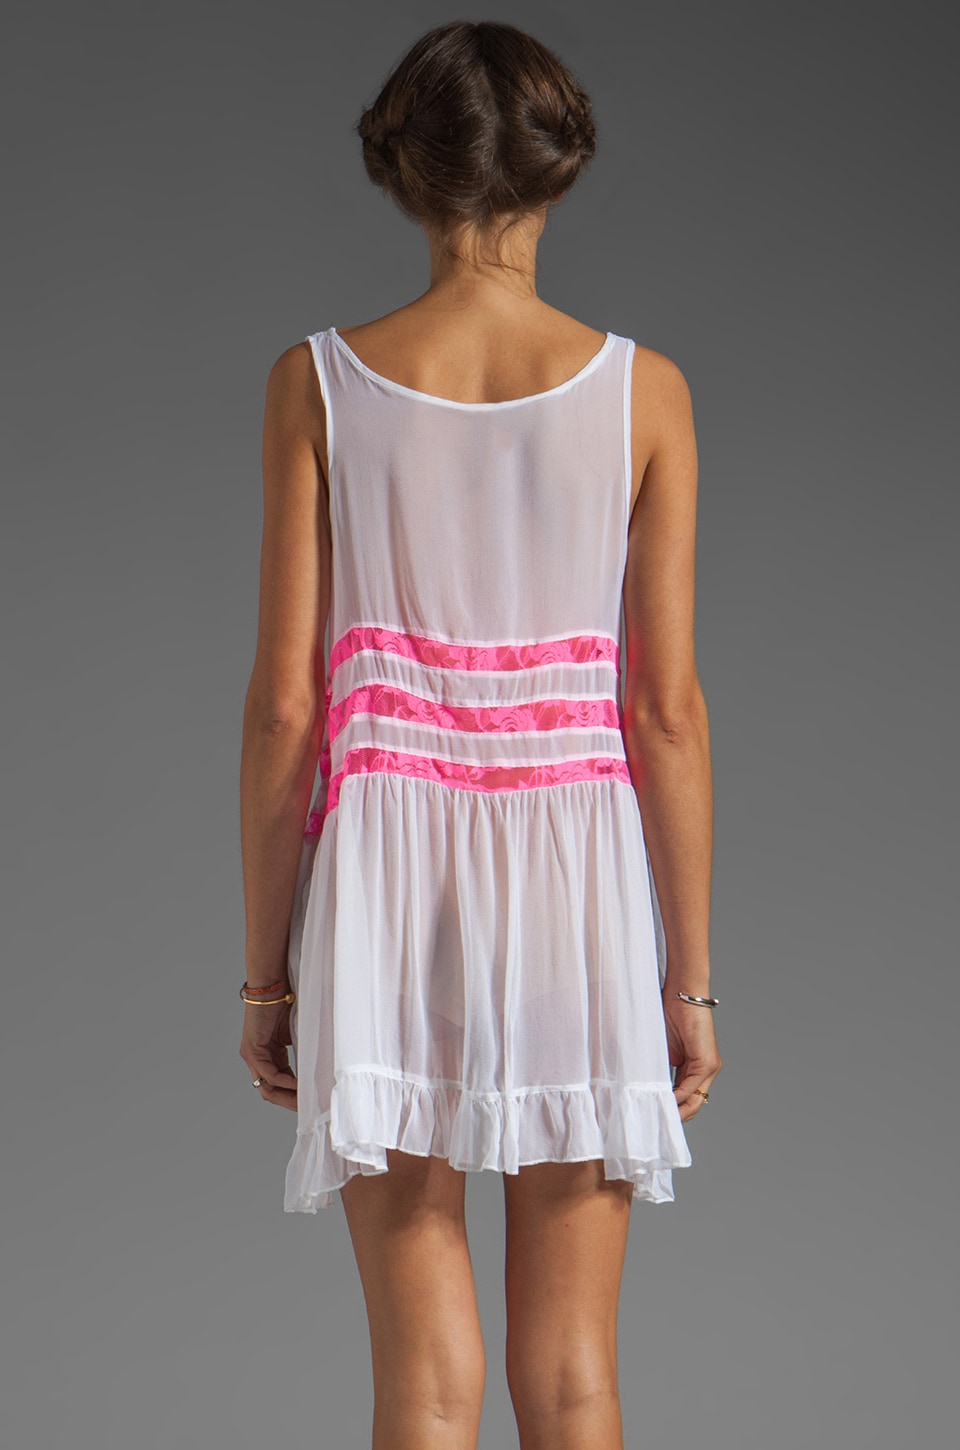 Gypsy Junkies Seville Tunic in White/Neon Pink